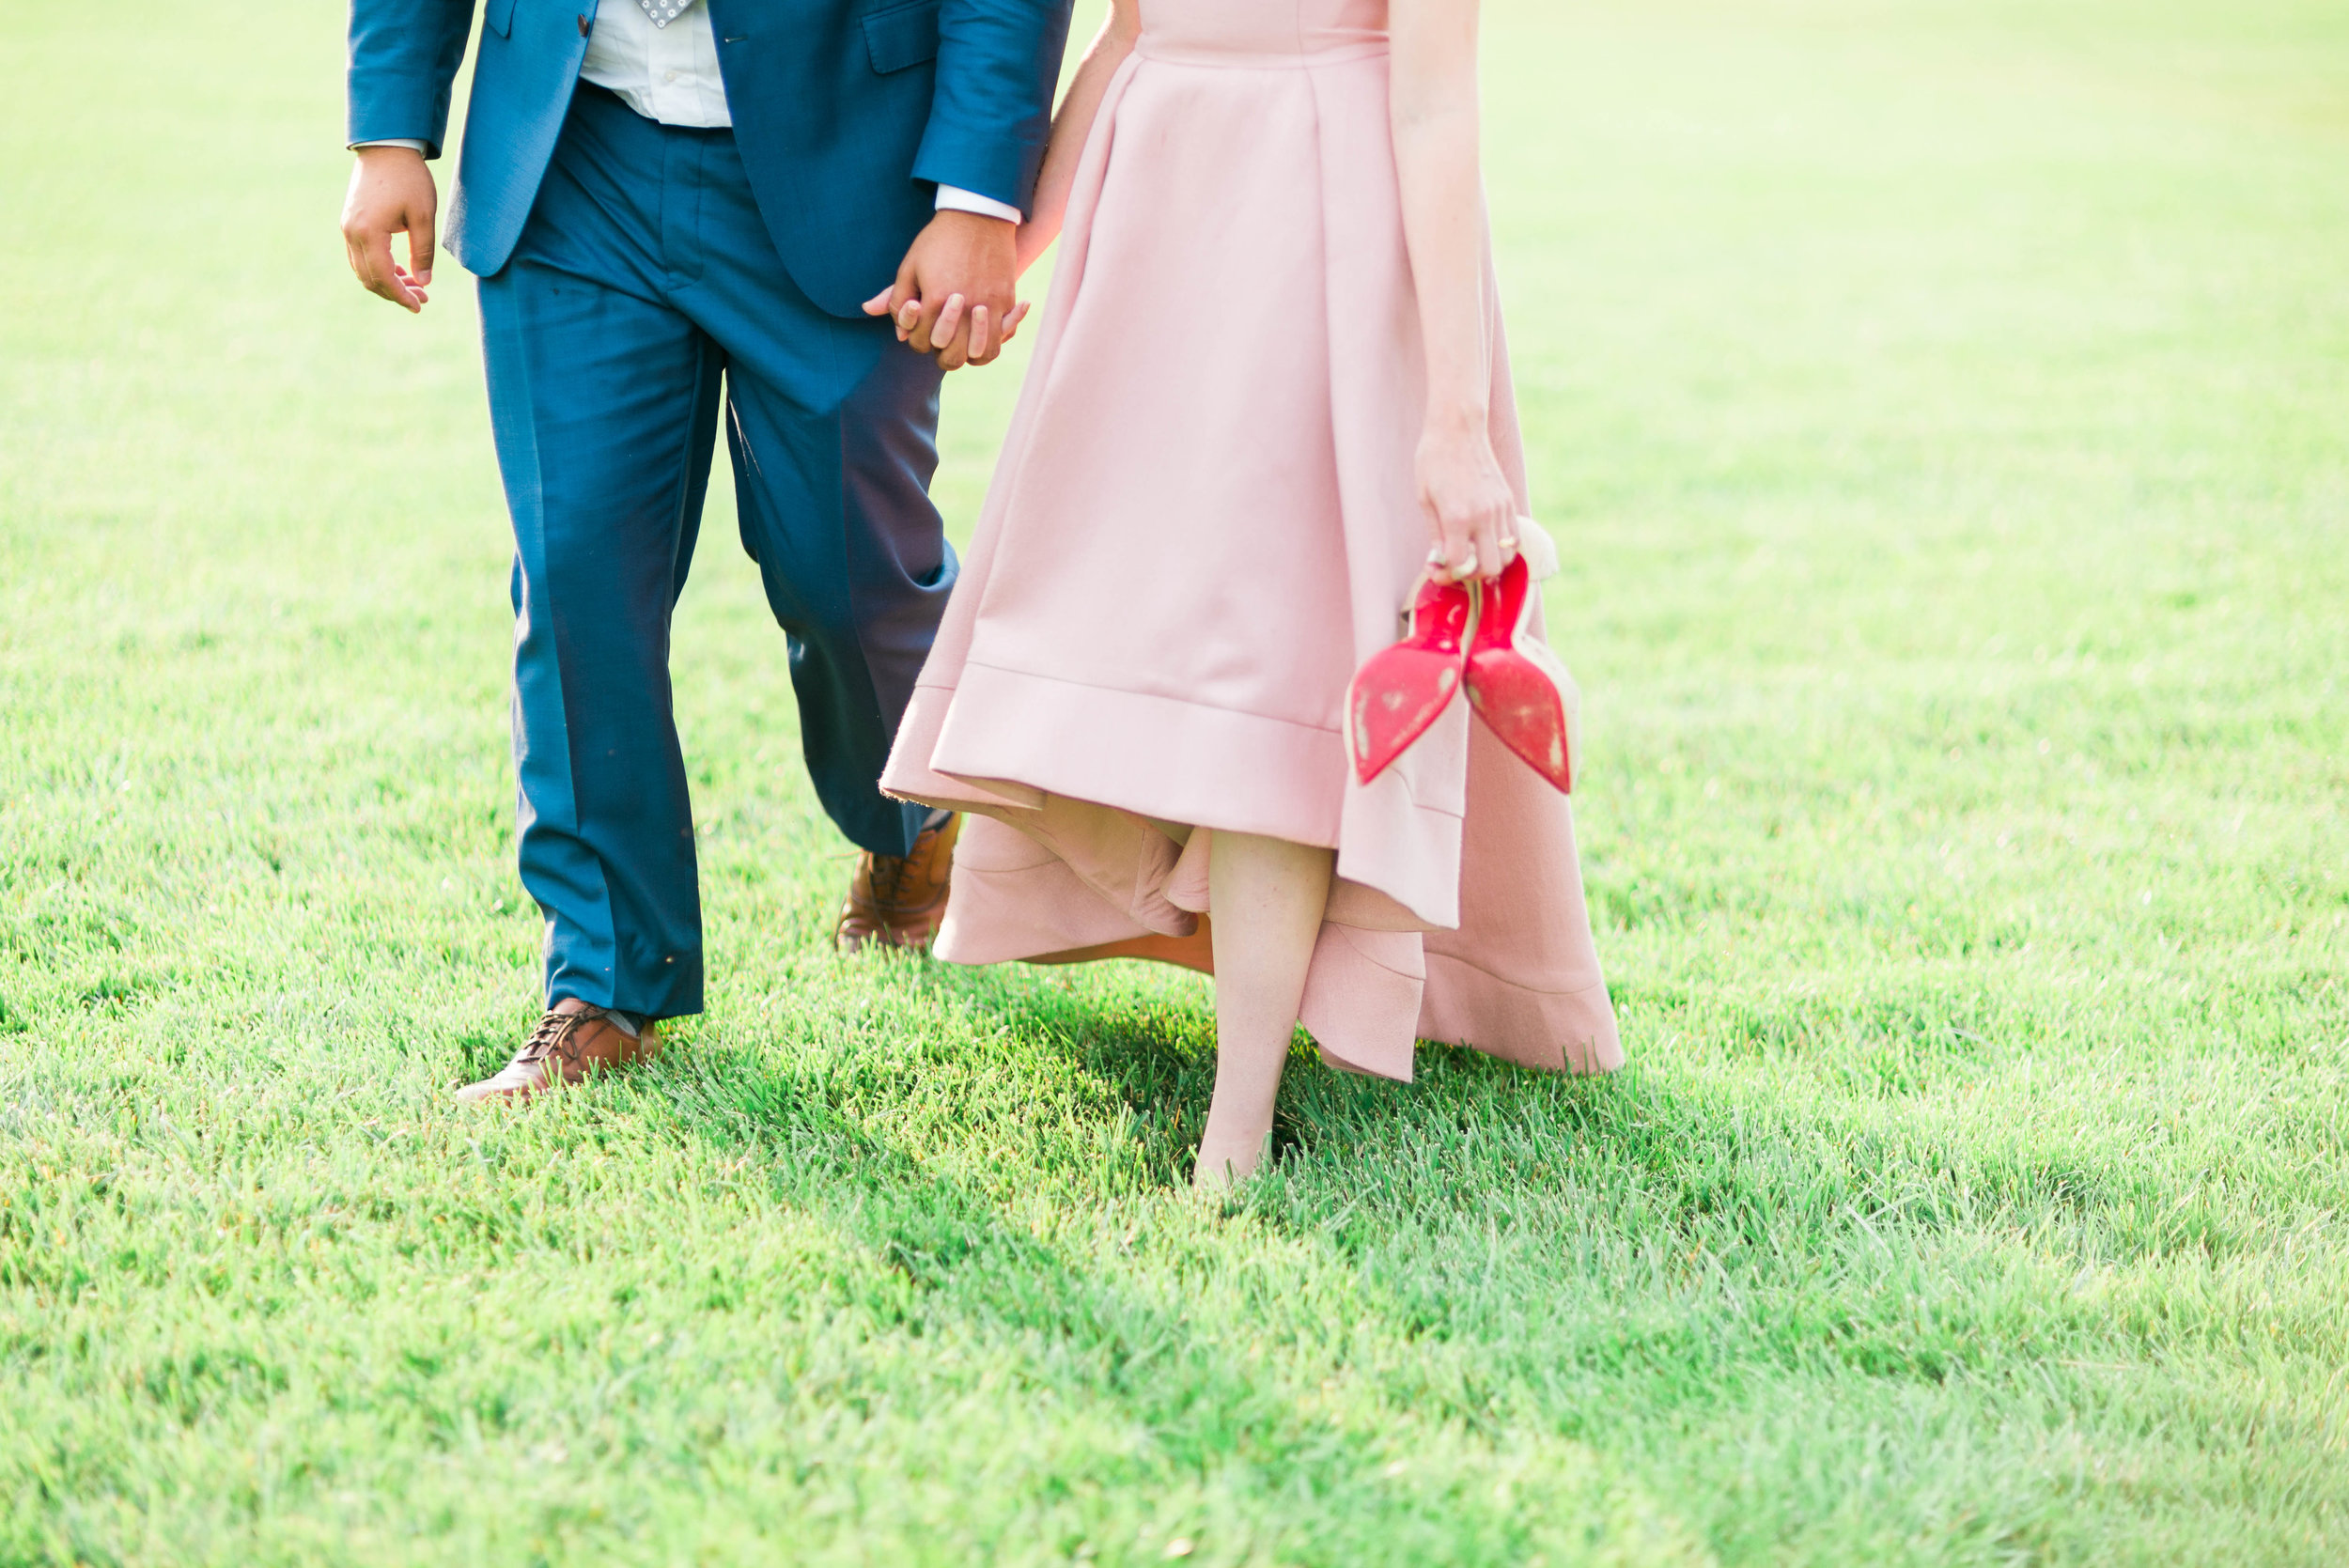 louboutin-bridal-heels-red-sole-elopement-wedding-photographer-virginia-ica-images